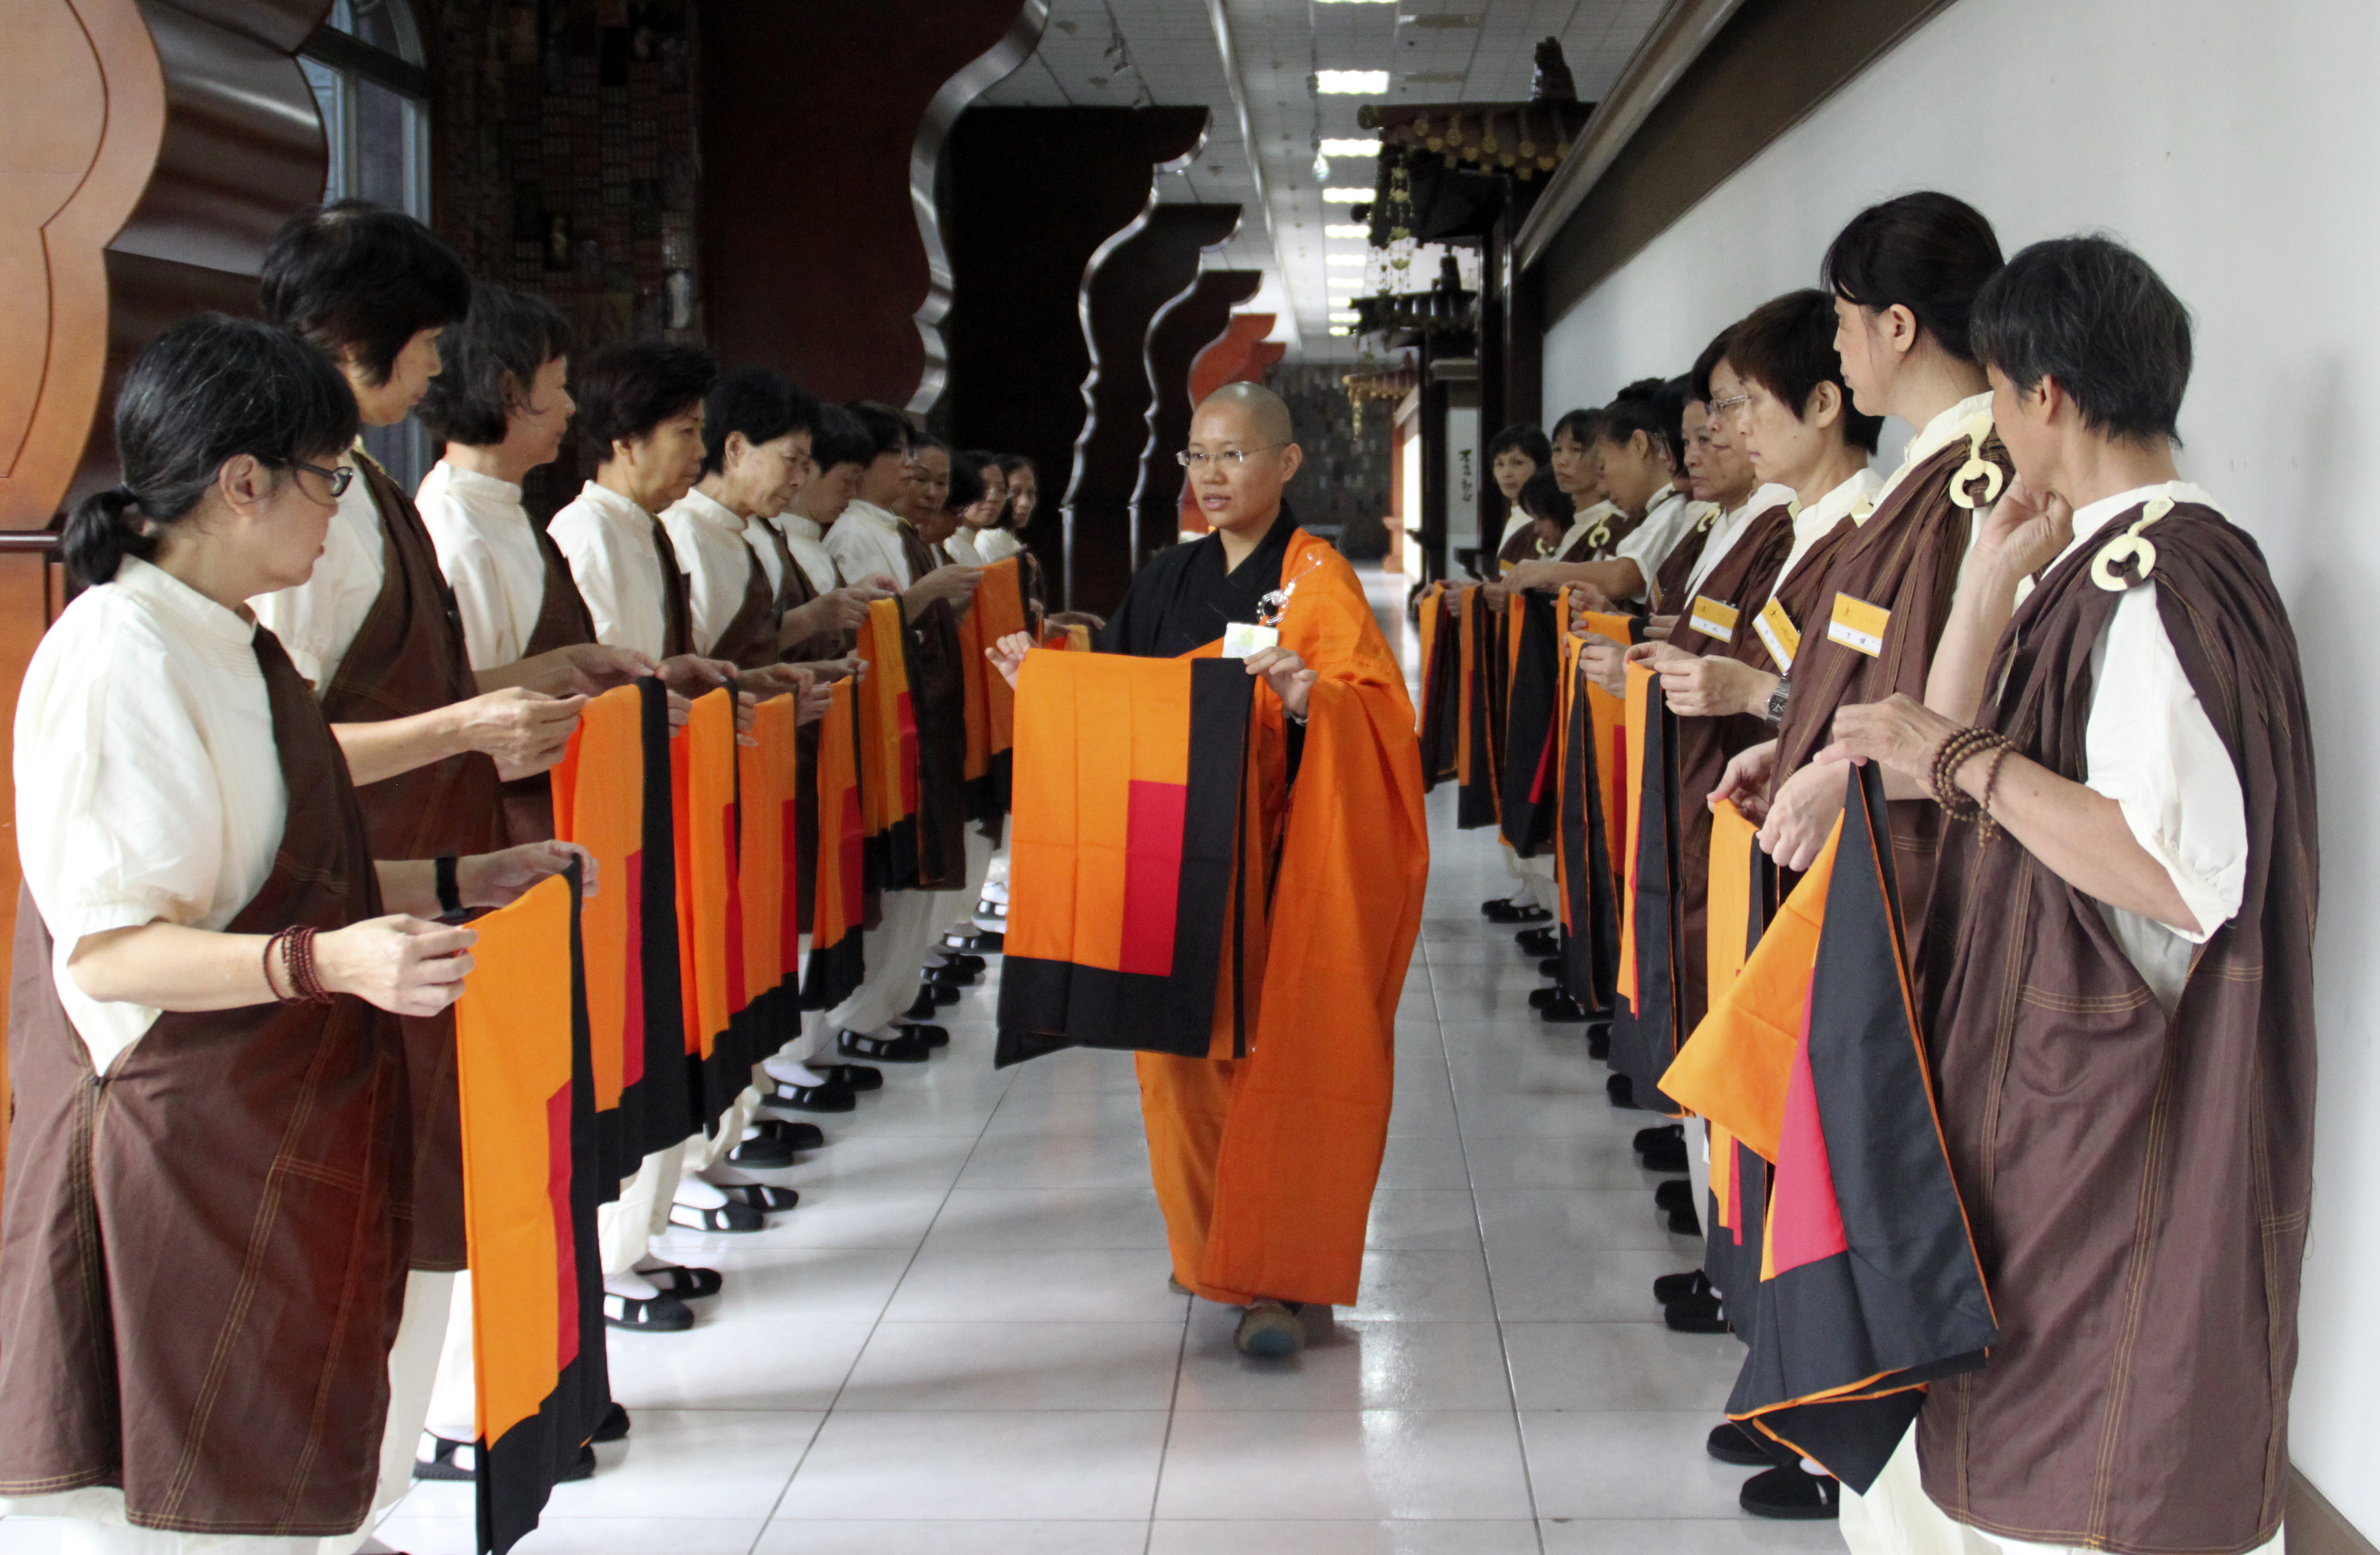 A guiding venerable shows a class of new preceptees how to fold the sitting mat, Fo Guang Shan Headquarters, 2016. Photo by Life News Agency.